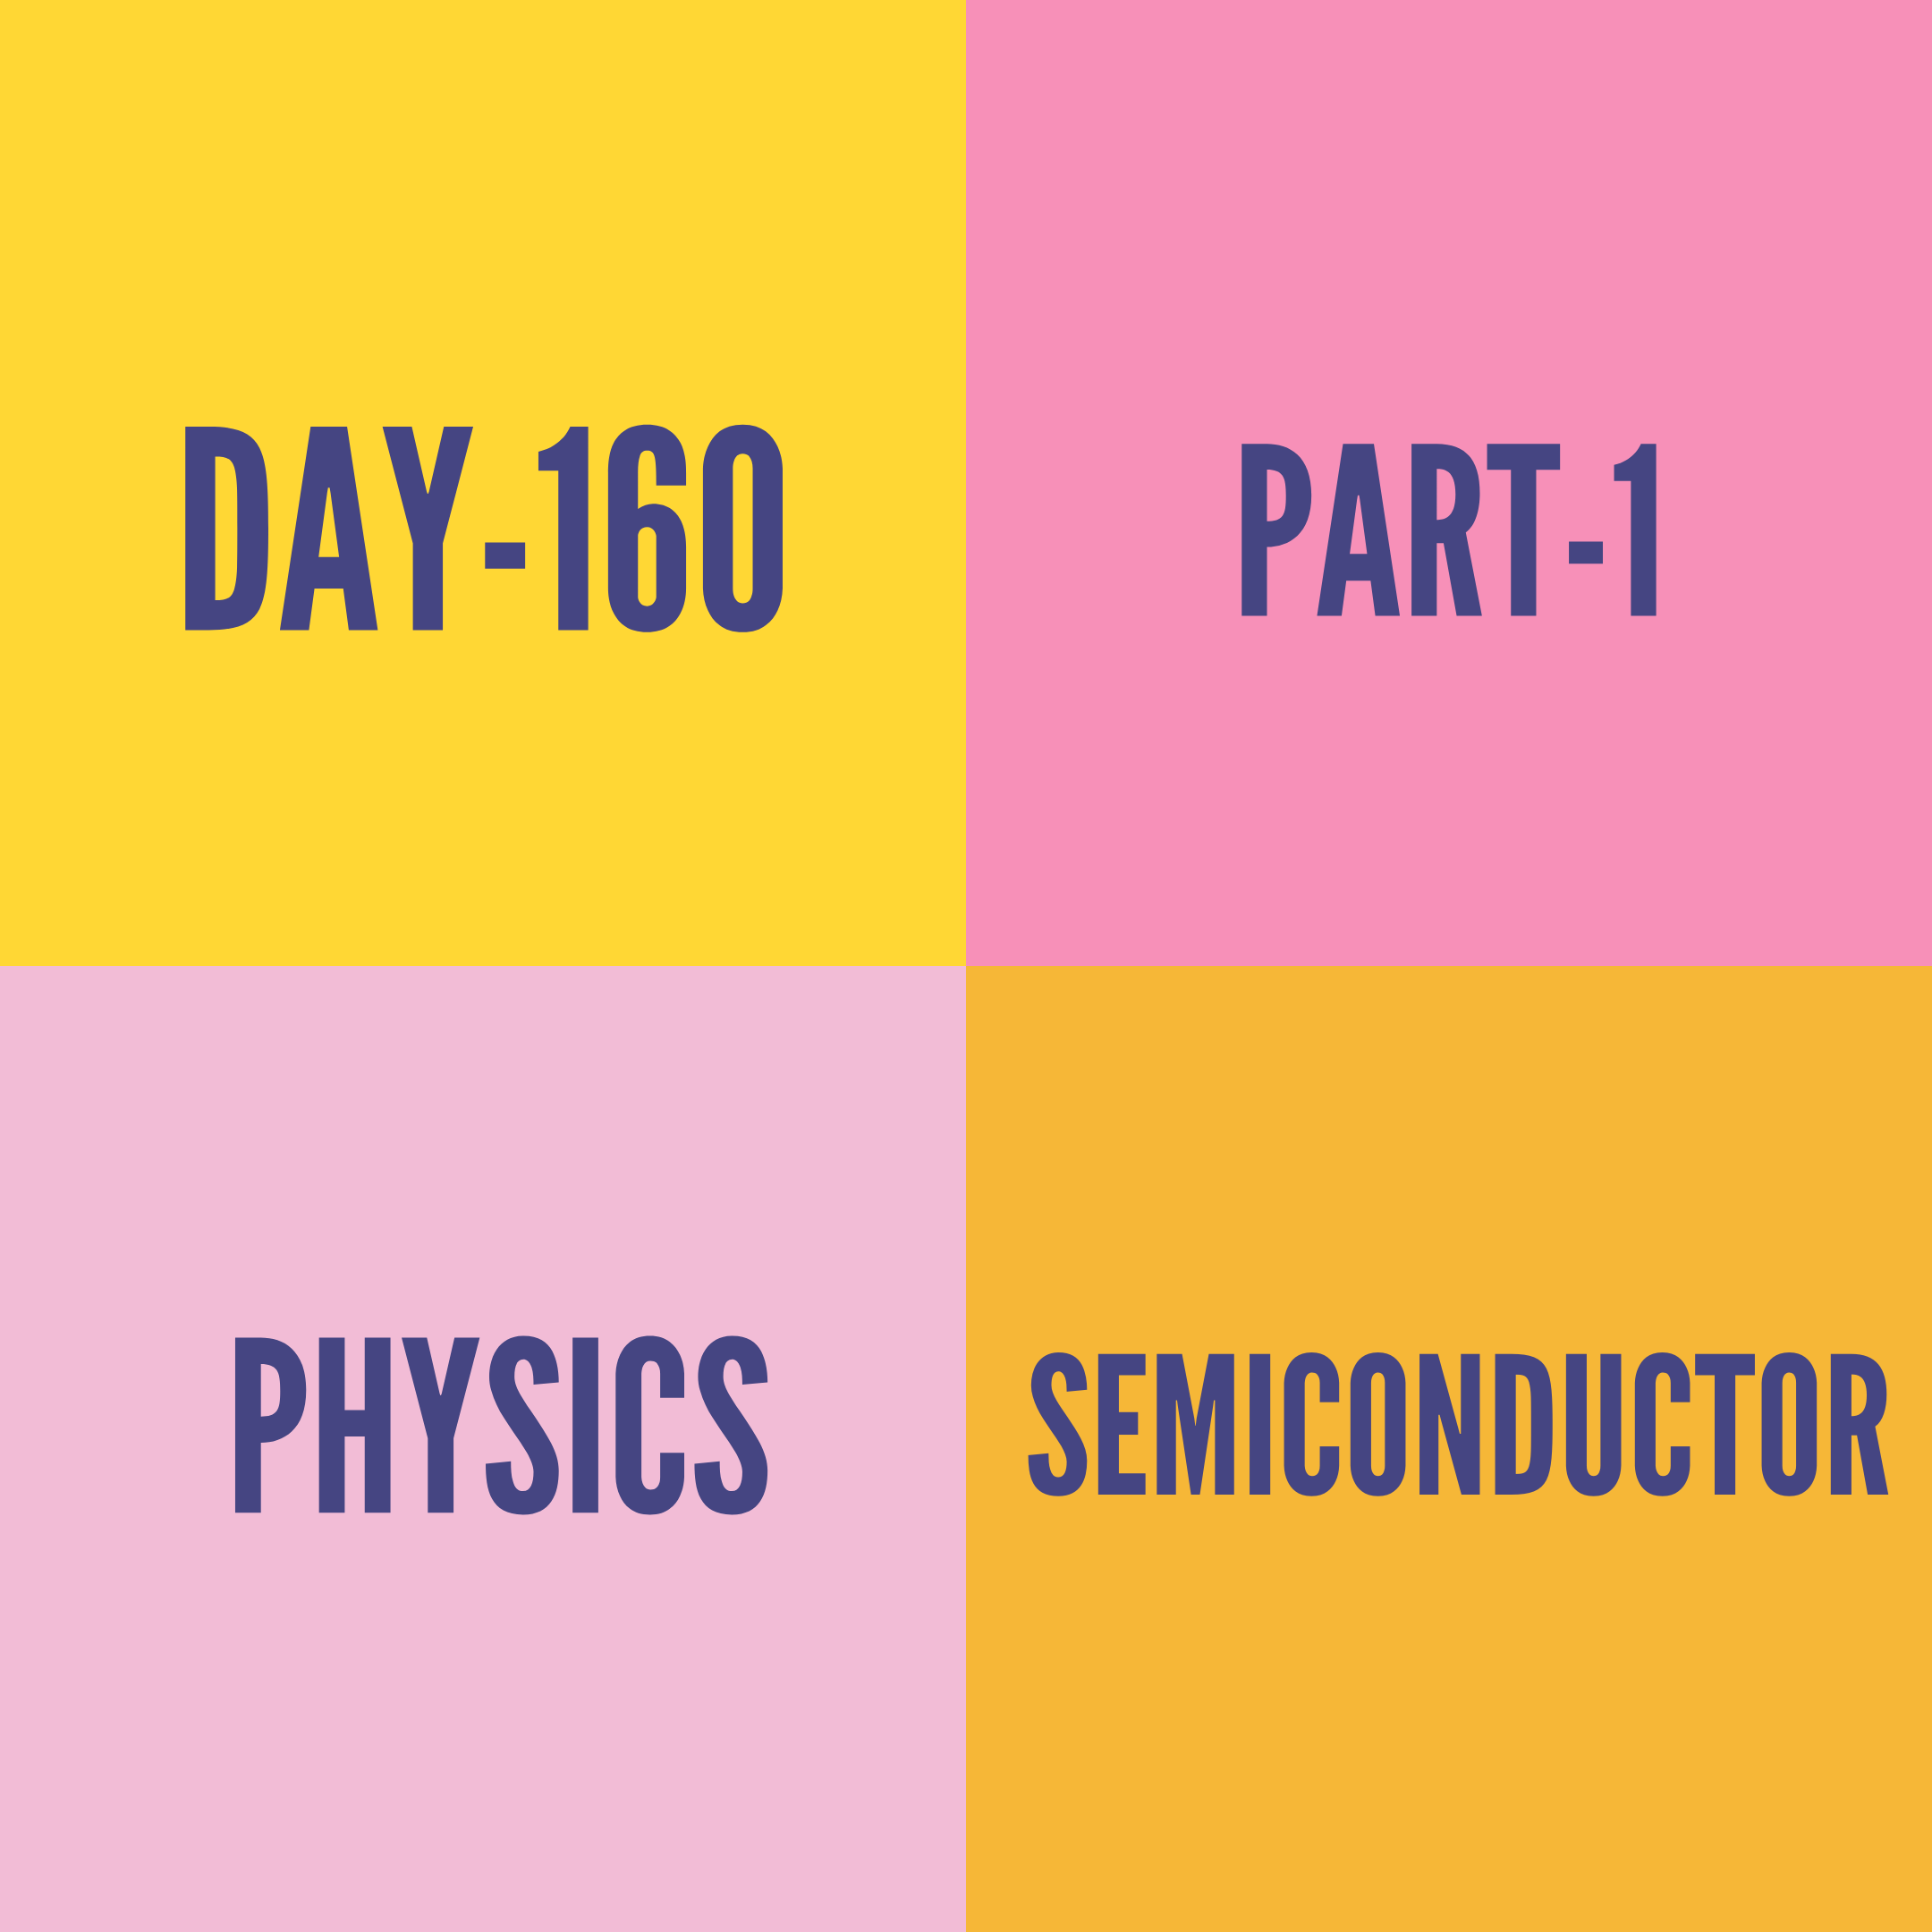 DAY-160 PART-1 SEMICONDUCTOR